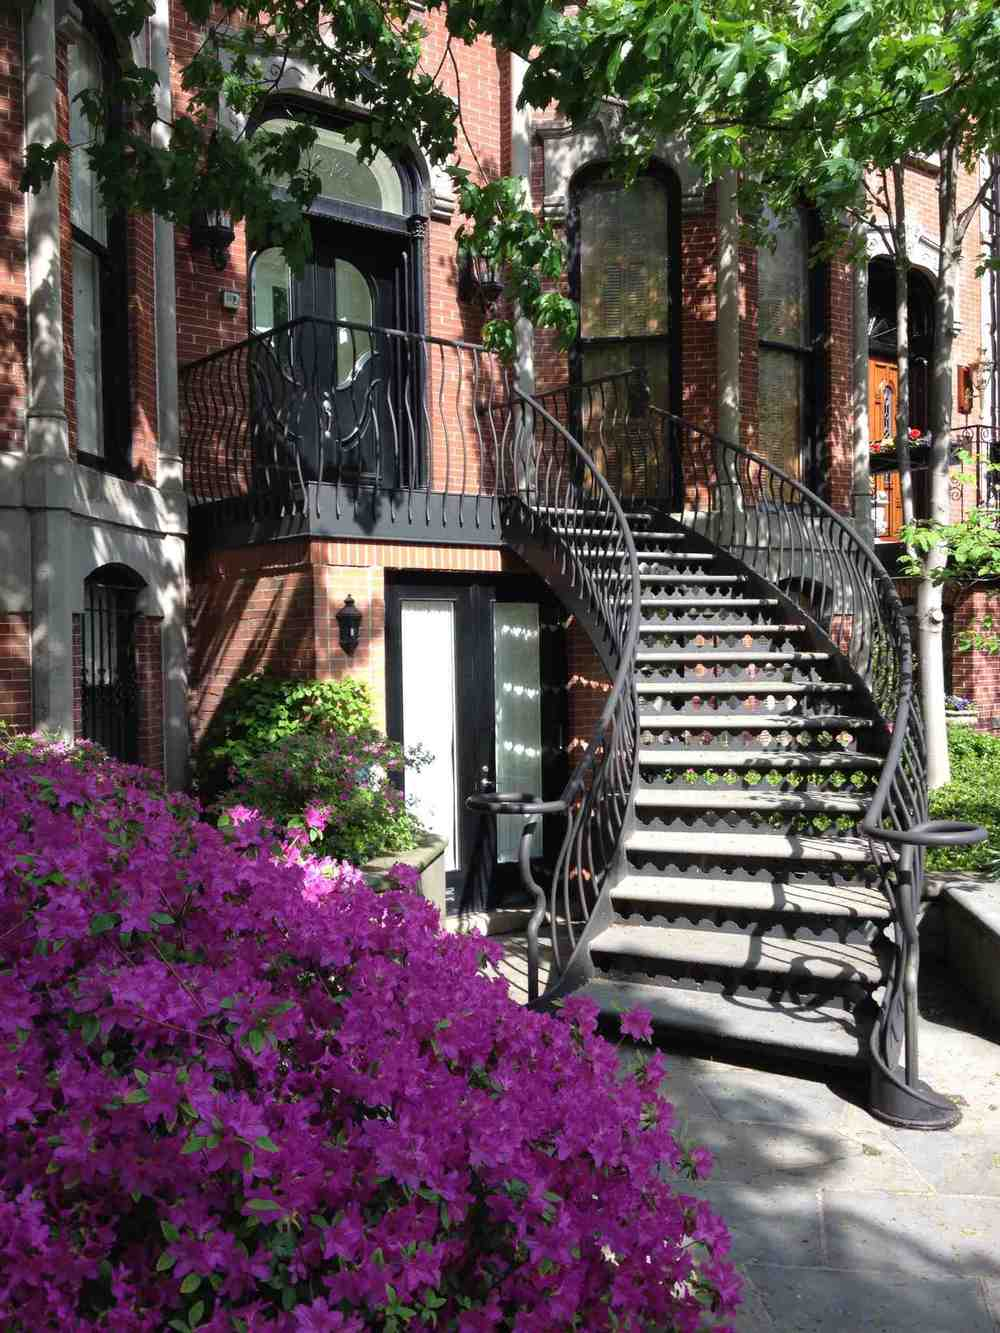 Another curved staircase that demonstrates the importance of ornamentation and decoration to create pleasant walking streets in urban setting.  The flowers magnify the sense of beauty and pride of ownership.